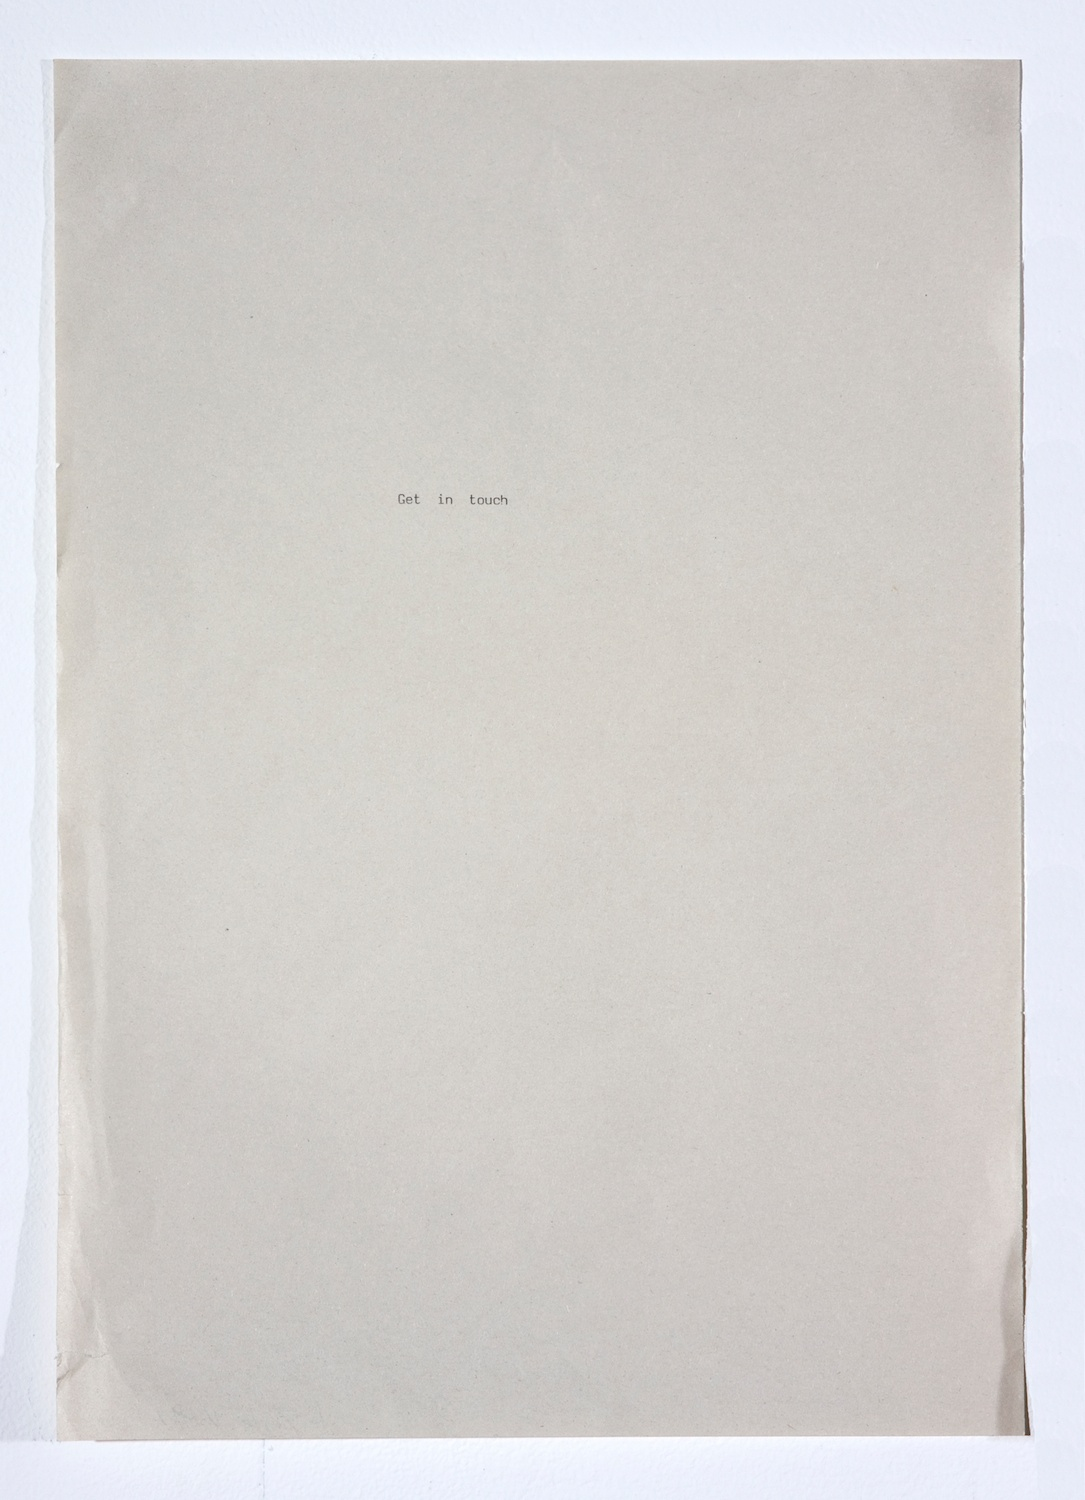 Sue Tompkins  Untitled  2008 Type on paper 11h x 8 ½w in